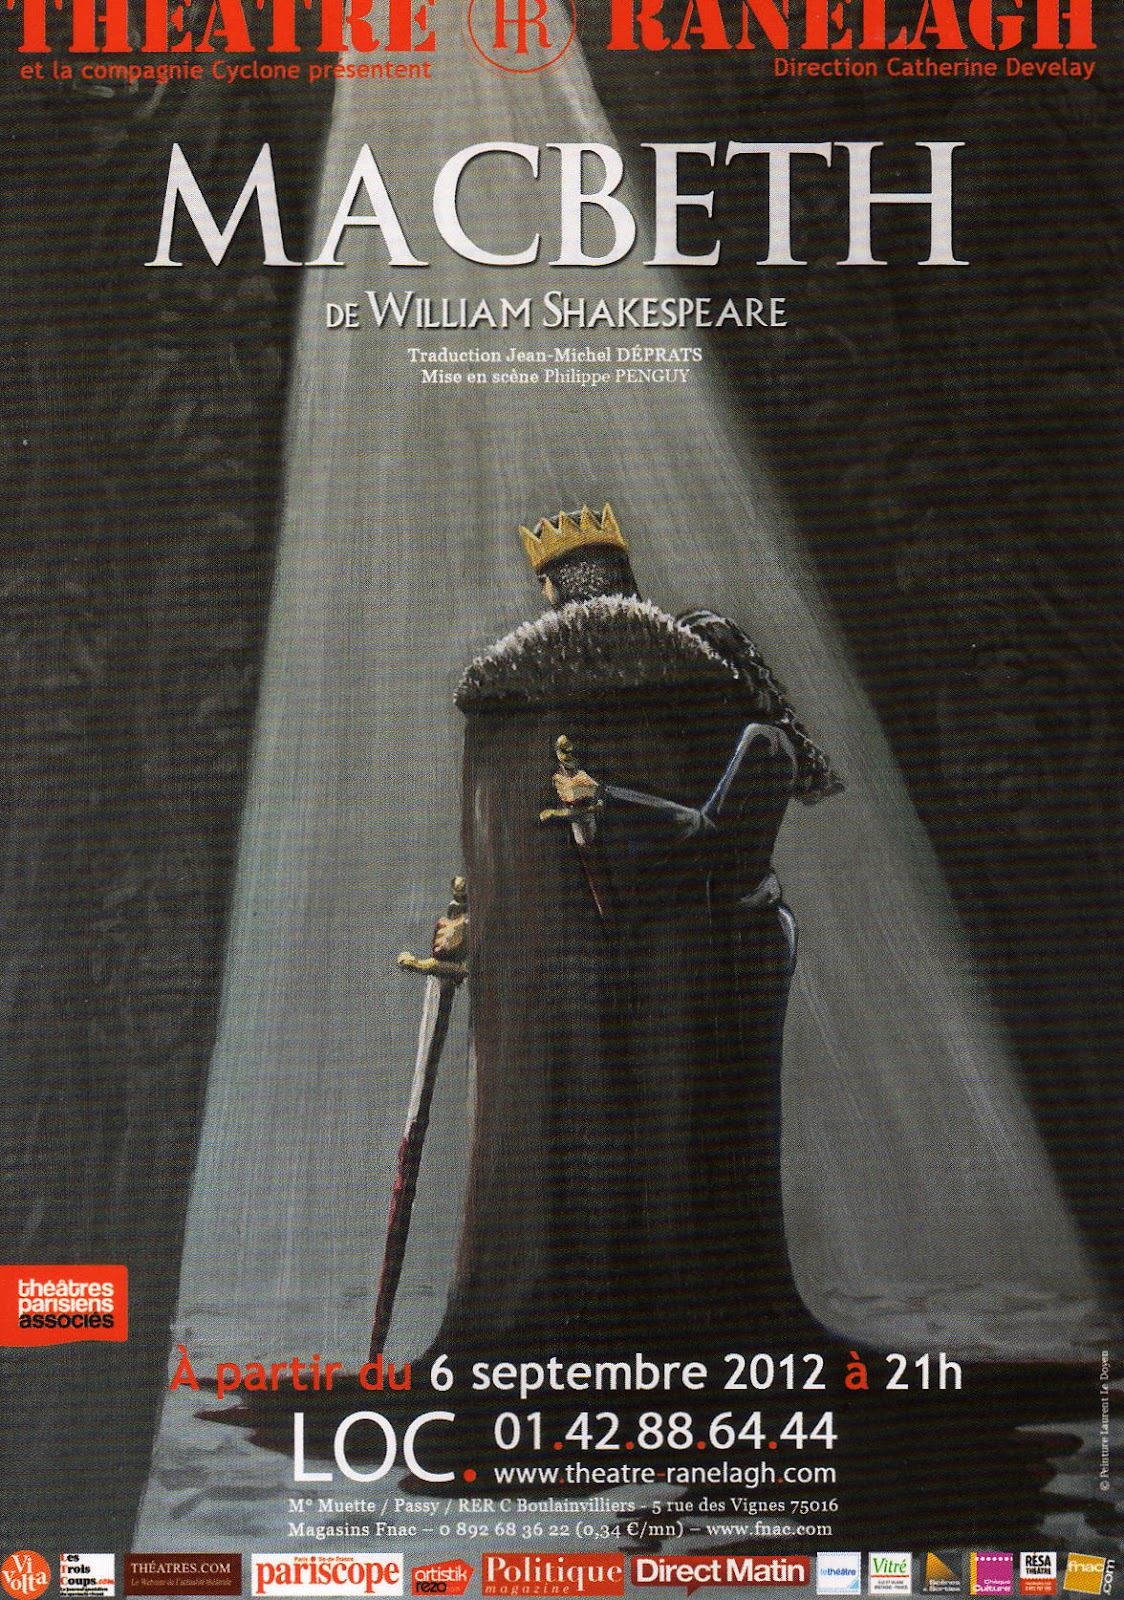 a critique of william shakespeares macbeth While william shakespeare's reputation is based primarily on his plays, he became famous first as a poet with the partial exception of the sonnets (1609), quarried.